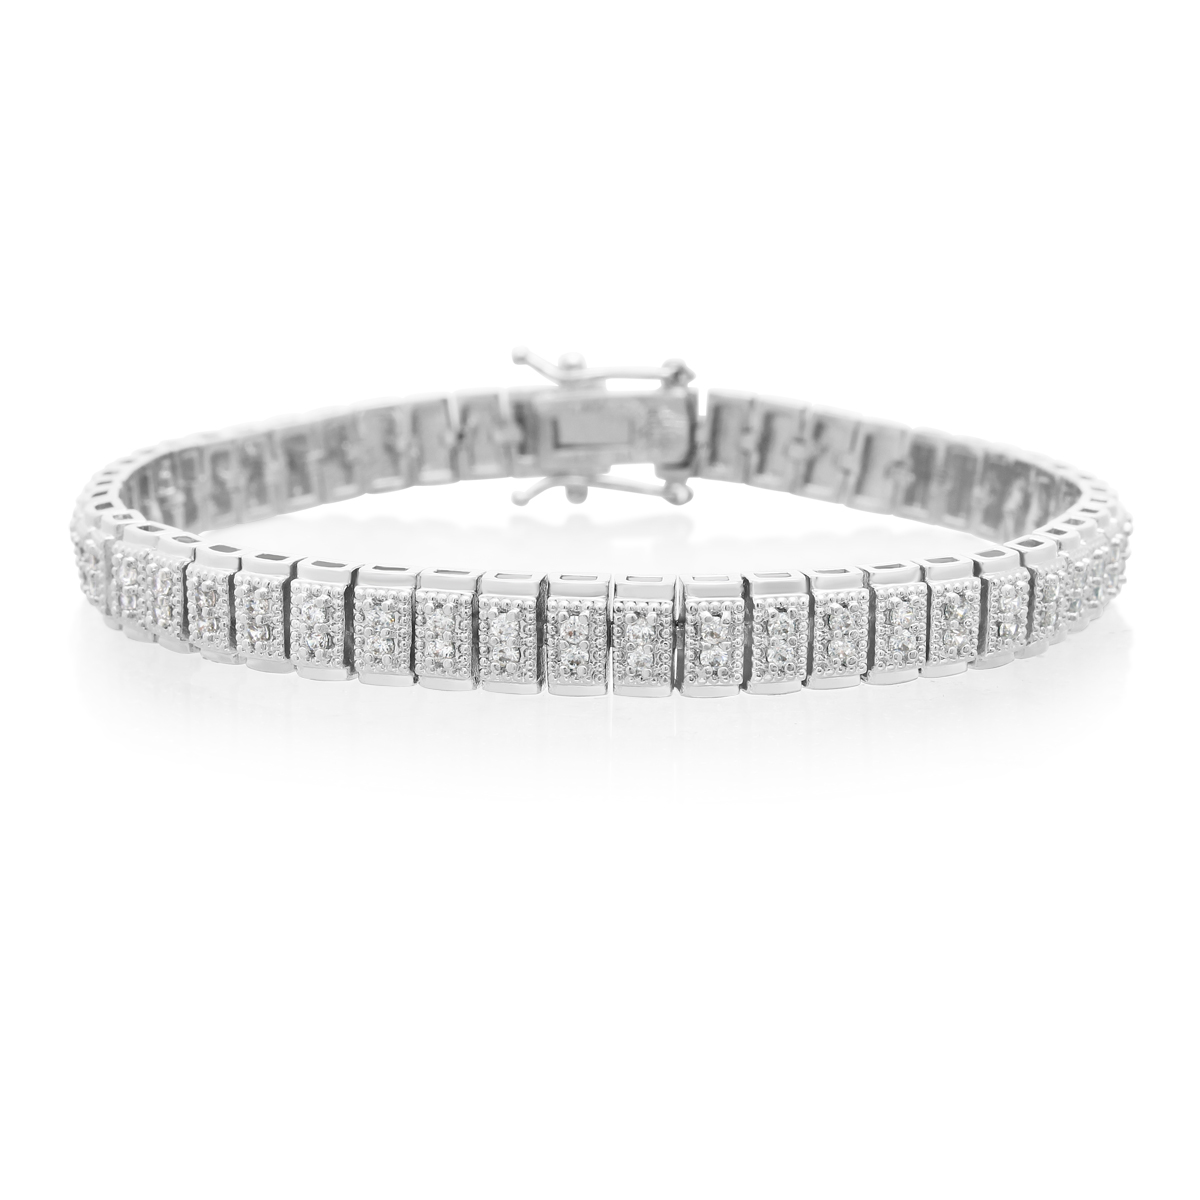 Double Row Diamond Tennis Bracelet 1.05cttw 6cae3e4d64b1